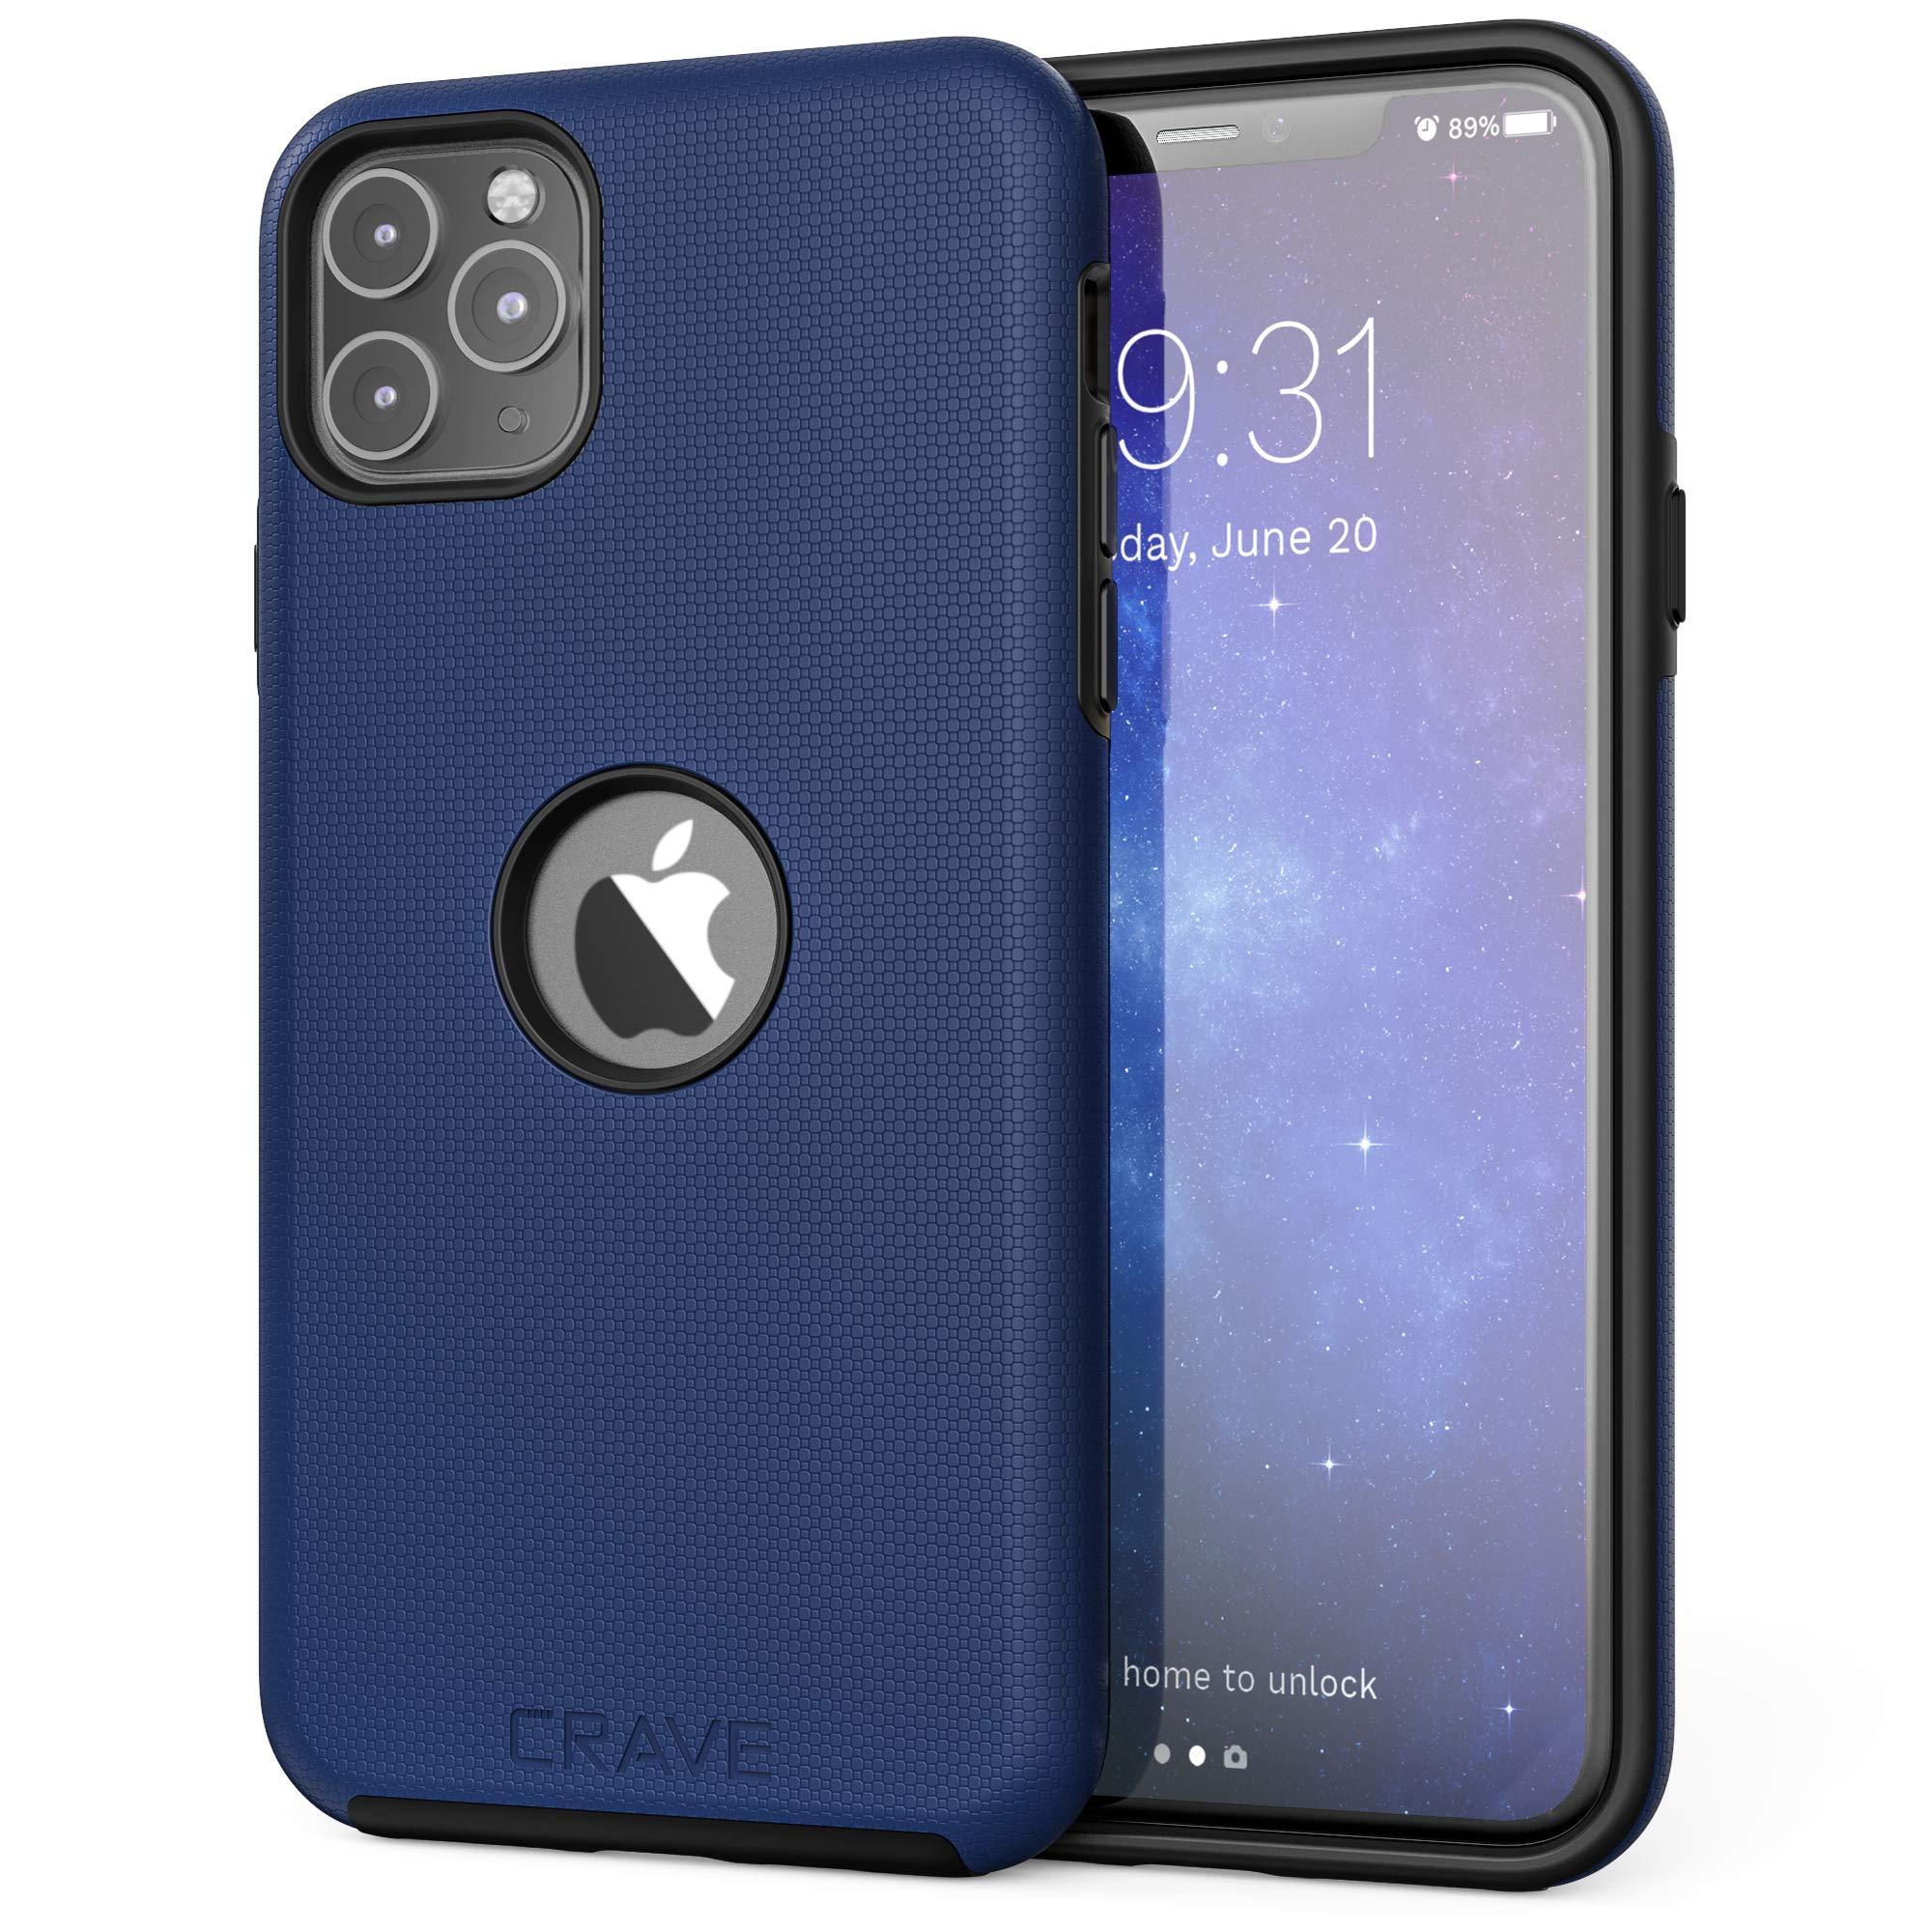 Crave iPhone 11 Pro Max Case, Dual Guard Protection Series Case for iPhone 11 Pro Max - Navy